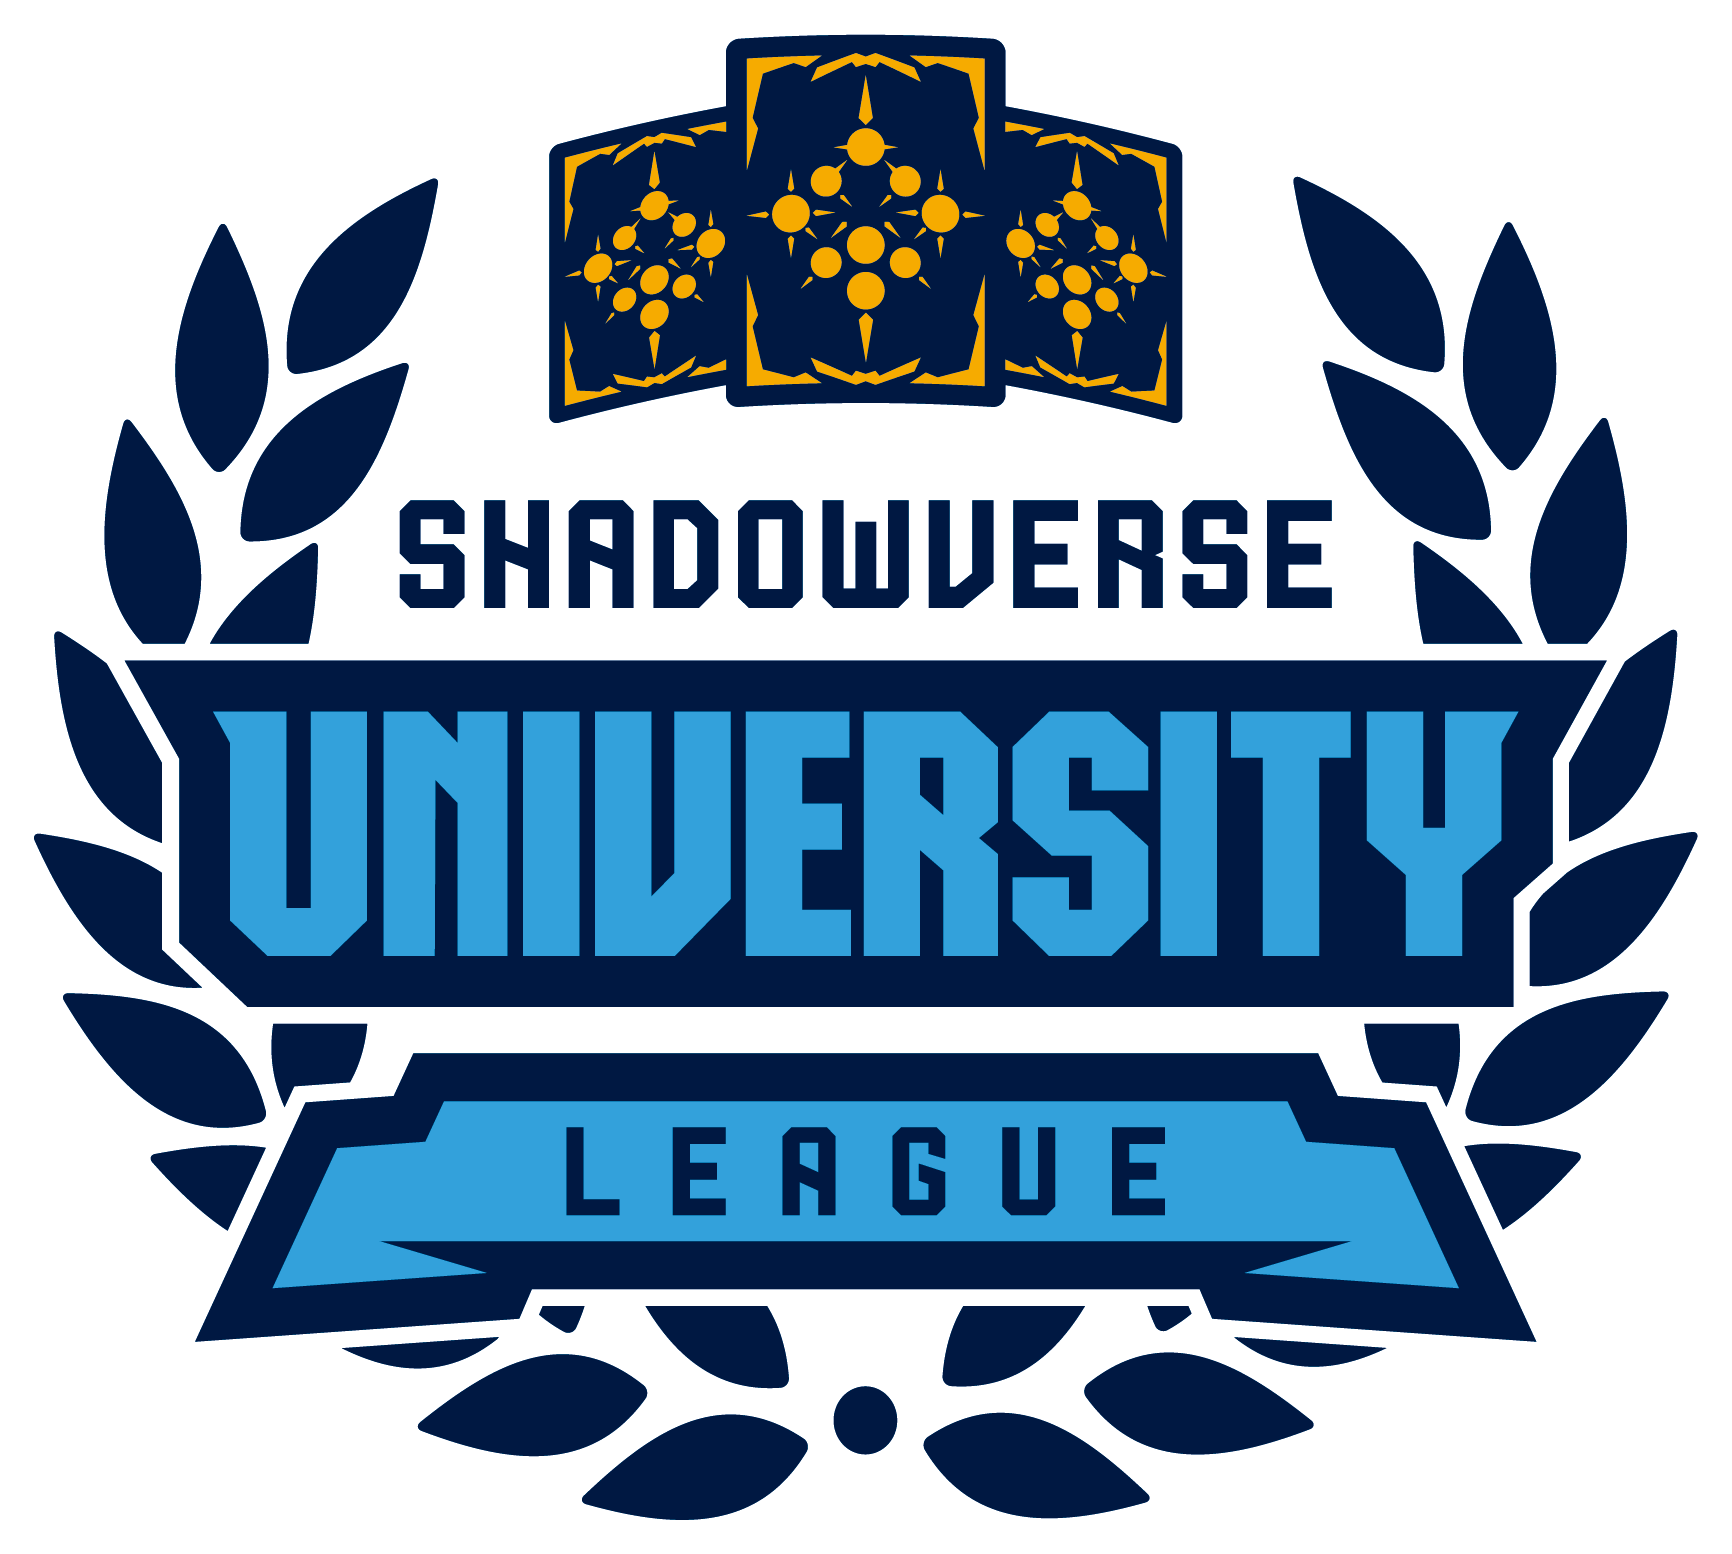 SHADOWVERSE UNIVERSITY LEAGUE